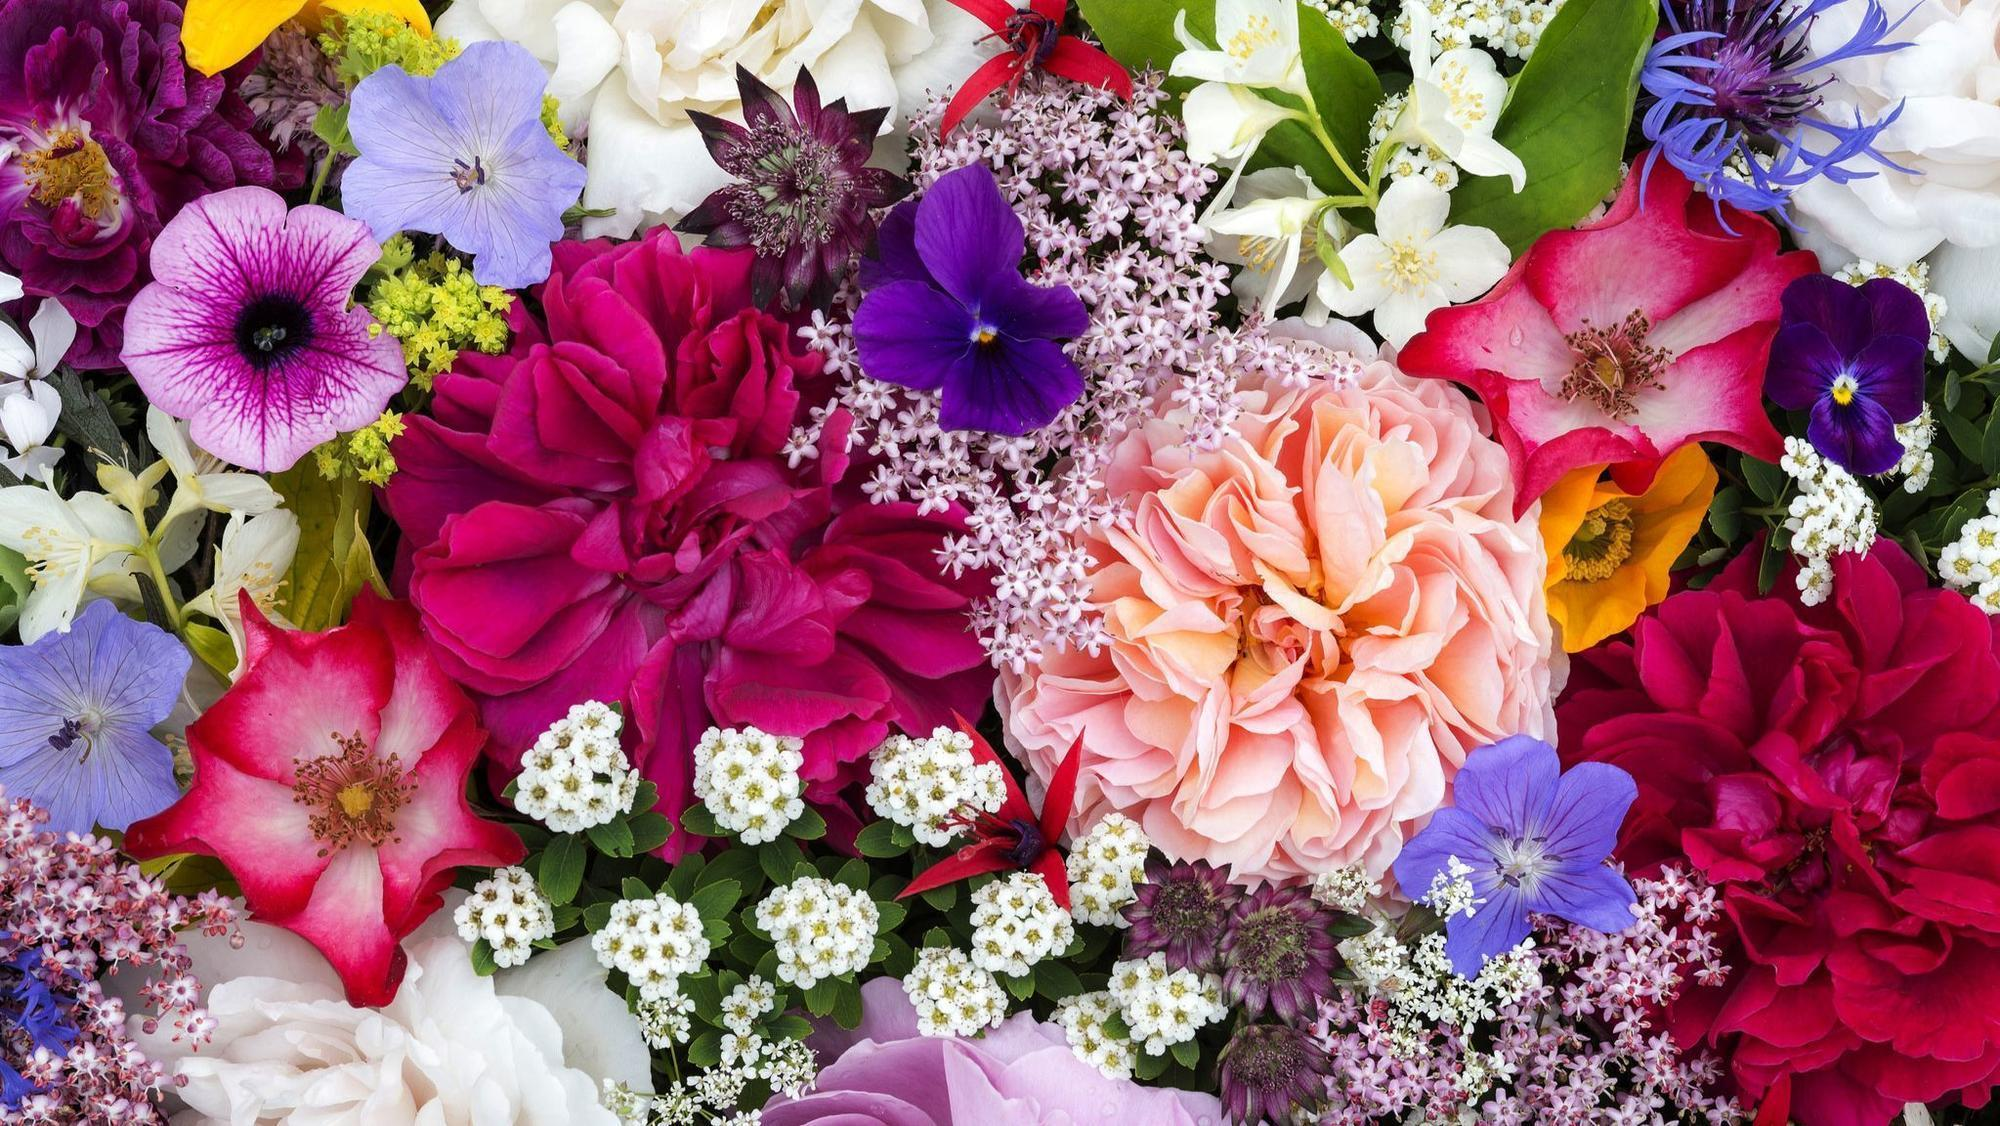 Floral delivery company FTD issues warning about its future